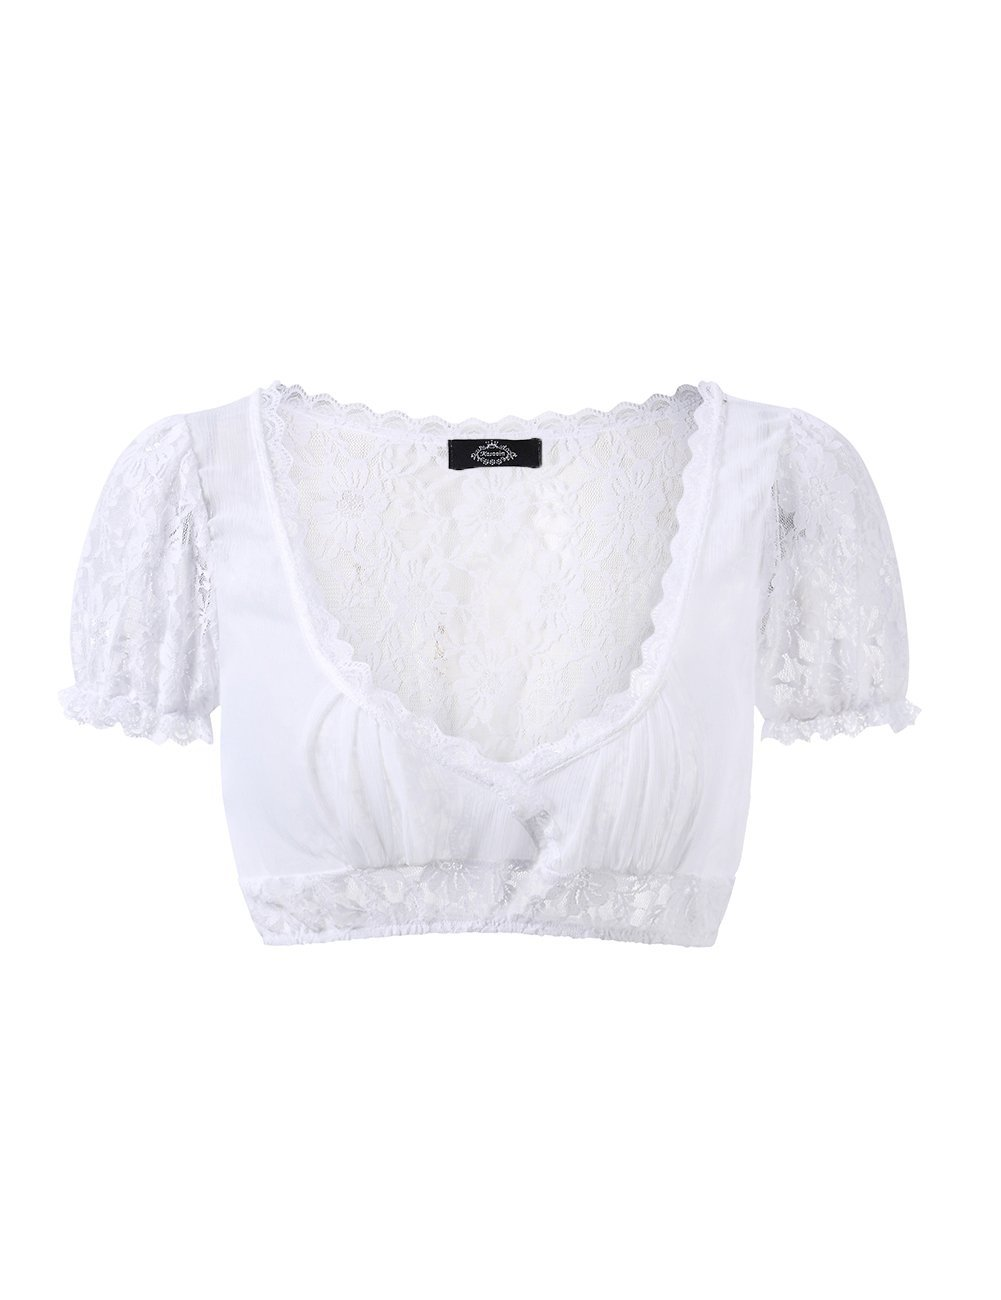 Leoie Women's Beer Festival Sexy See-Through Dirndl Solid Lace Chiffon Splicing Stylish Dirndl Top by Leoie (Image #2)